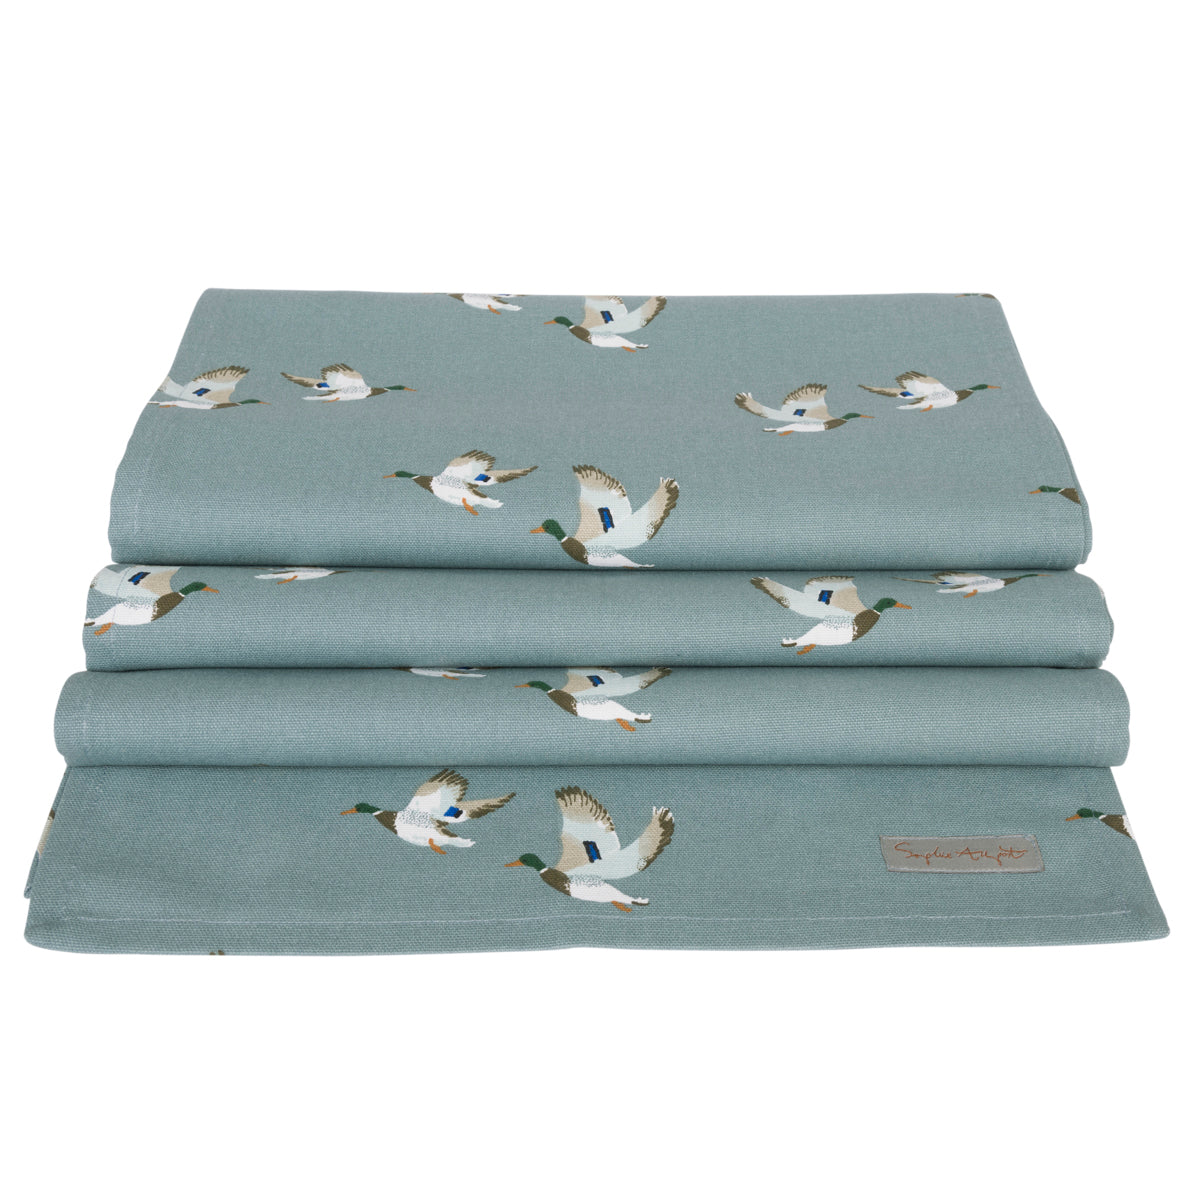 Ducks Table Runner by Sophie Allport